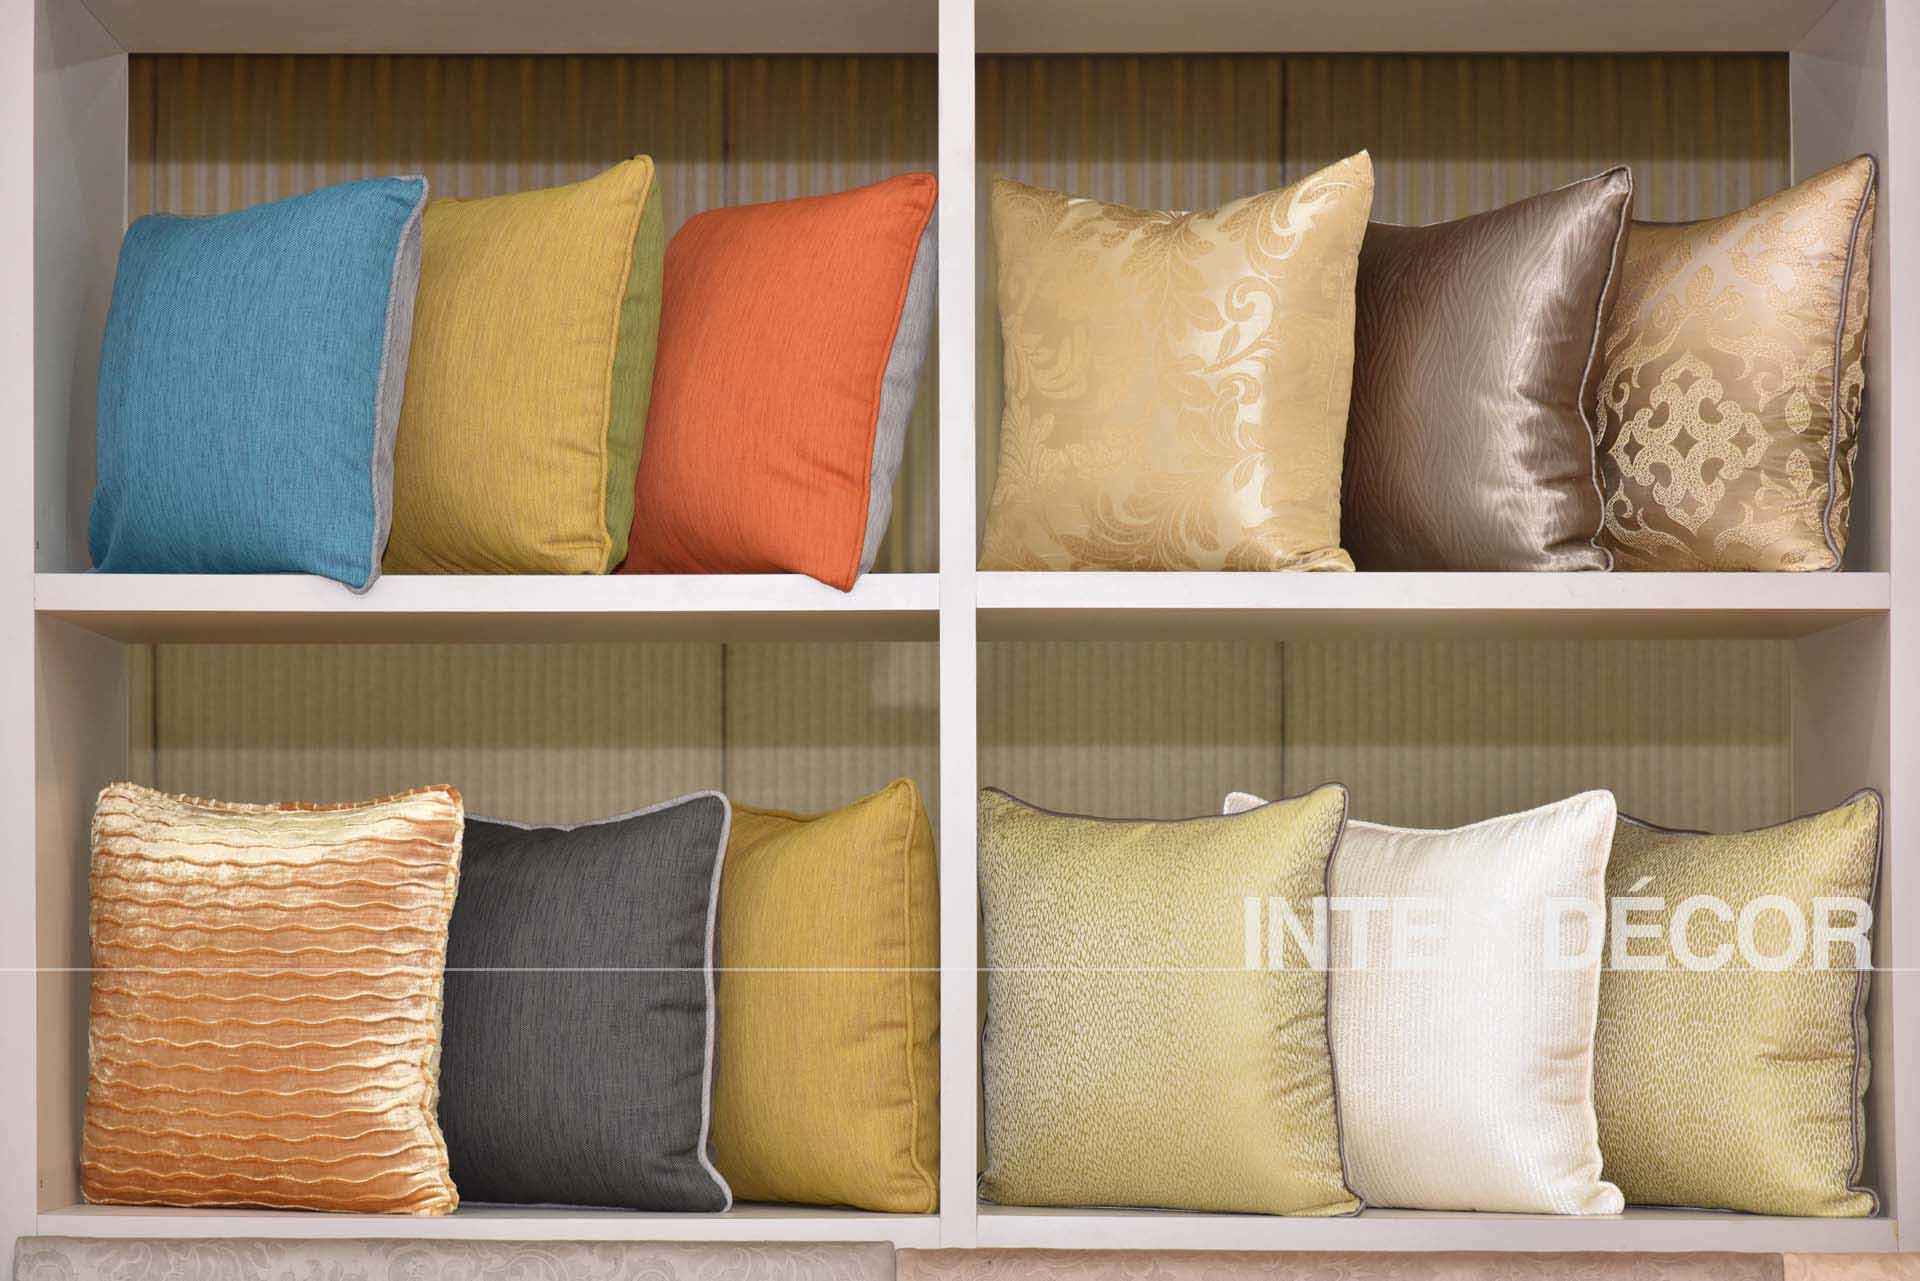 Duvets & Covers, Pillows & Covers, Throw Pillows for Hotels Malaysia Singapore